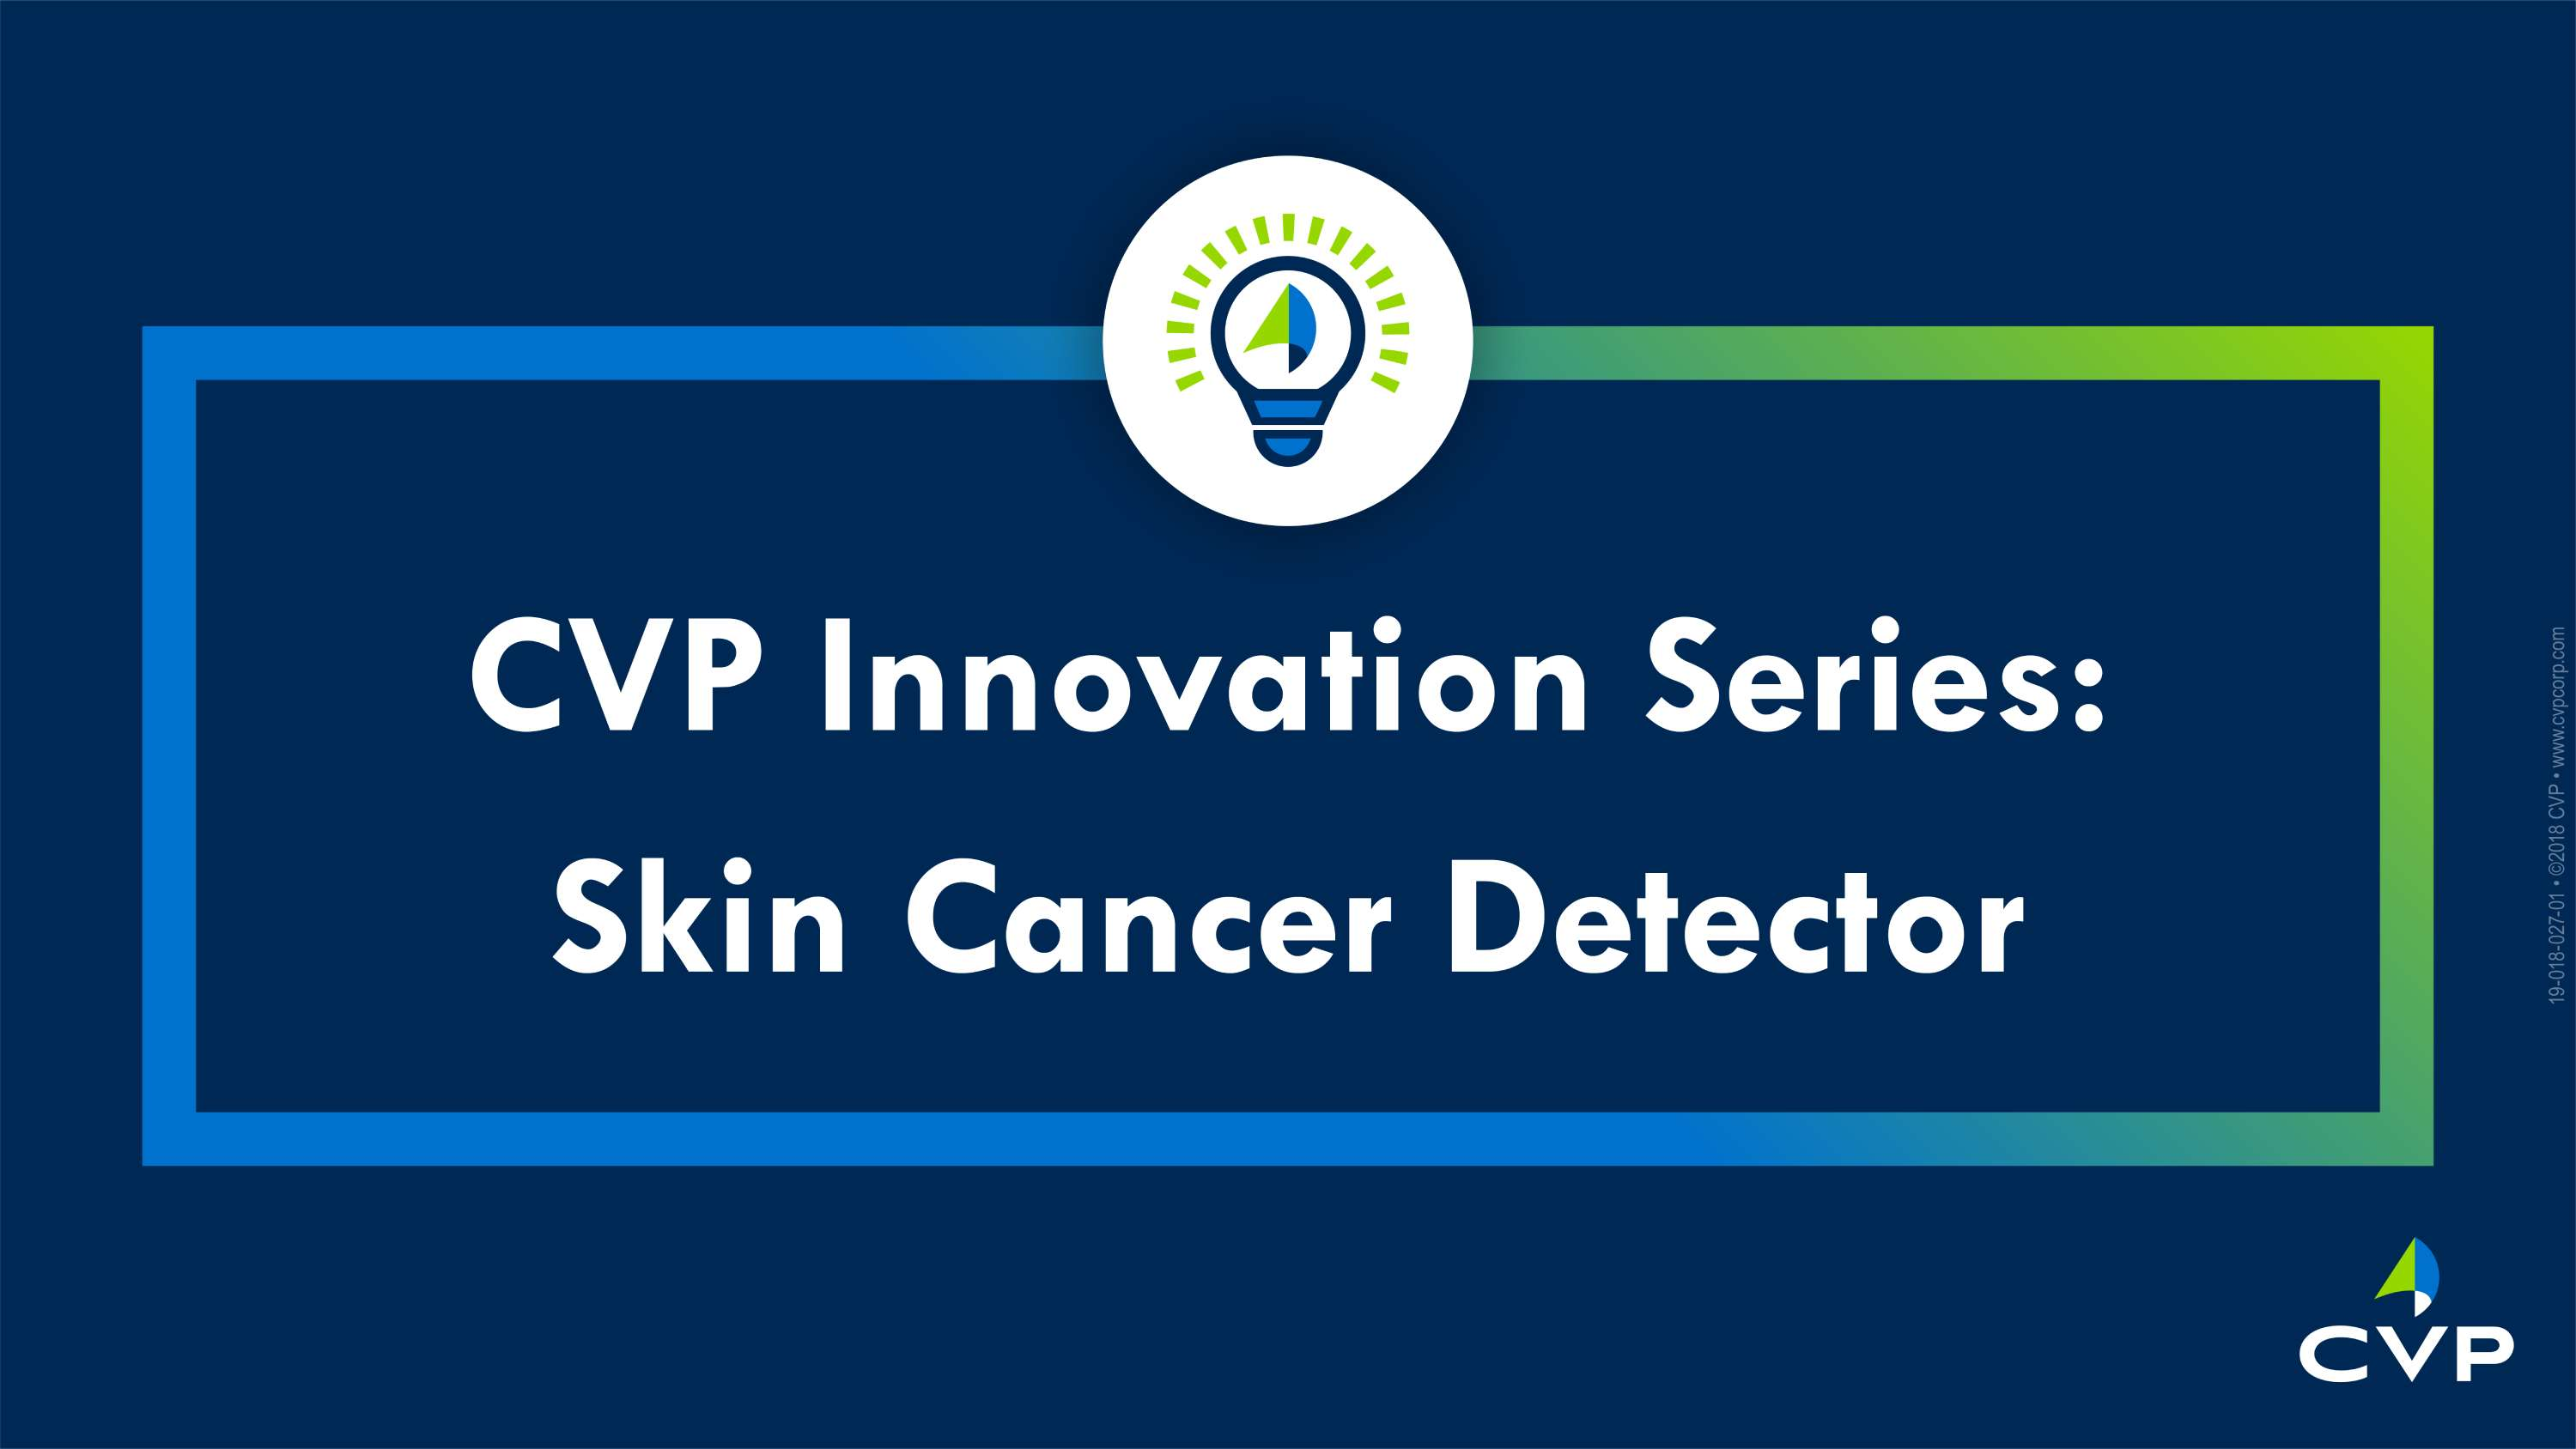 CVP Prototypes Skin Cancer Detector for Smartphones